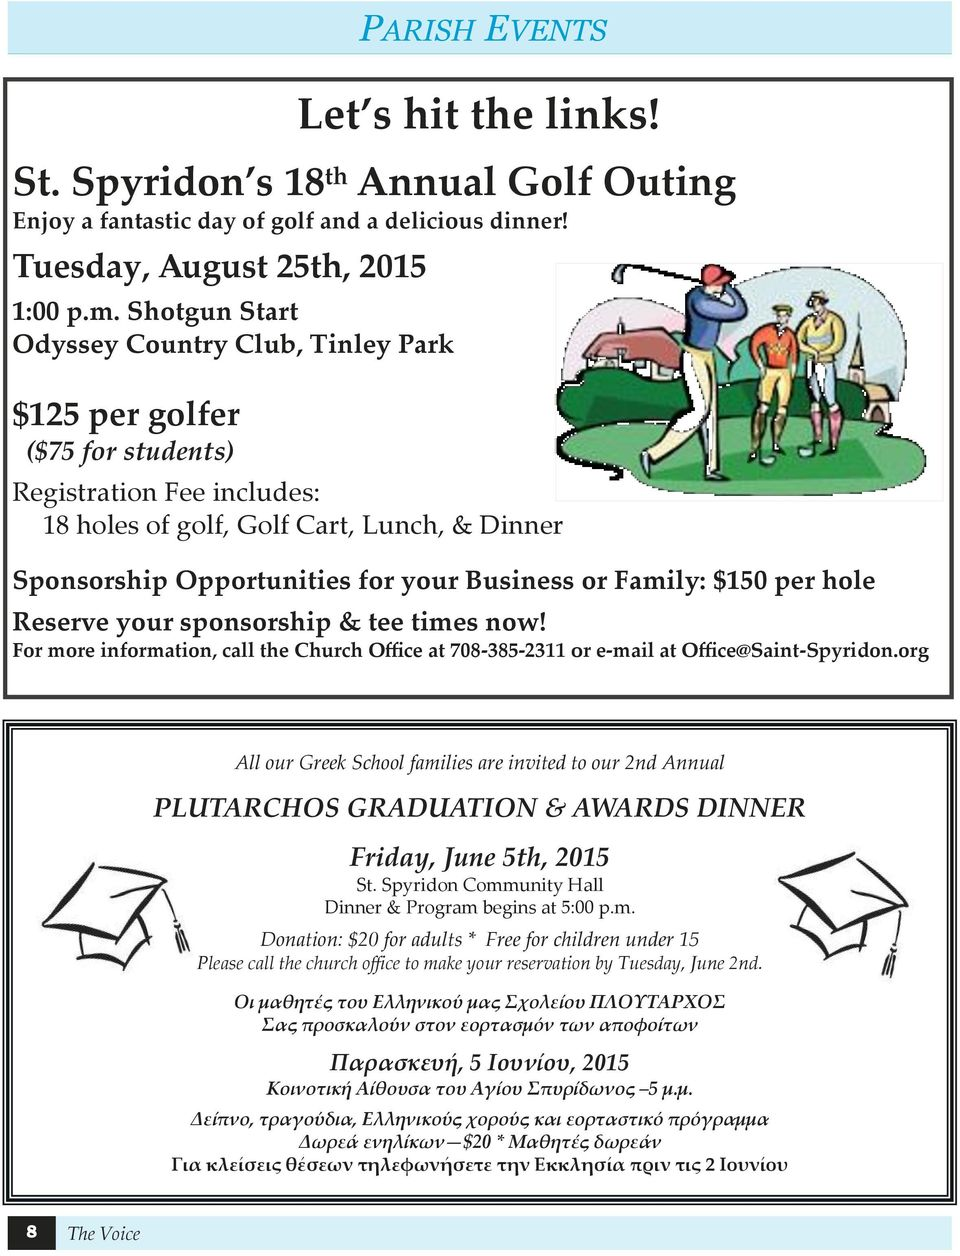 your Business or Family: $150 per hole Reserve your sponsorship & tee times now! For more information, call the Church Office at 708-385-2311 οr e-mail at Office@Saint-Spyridon.